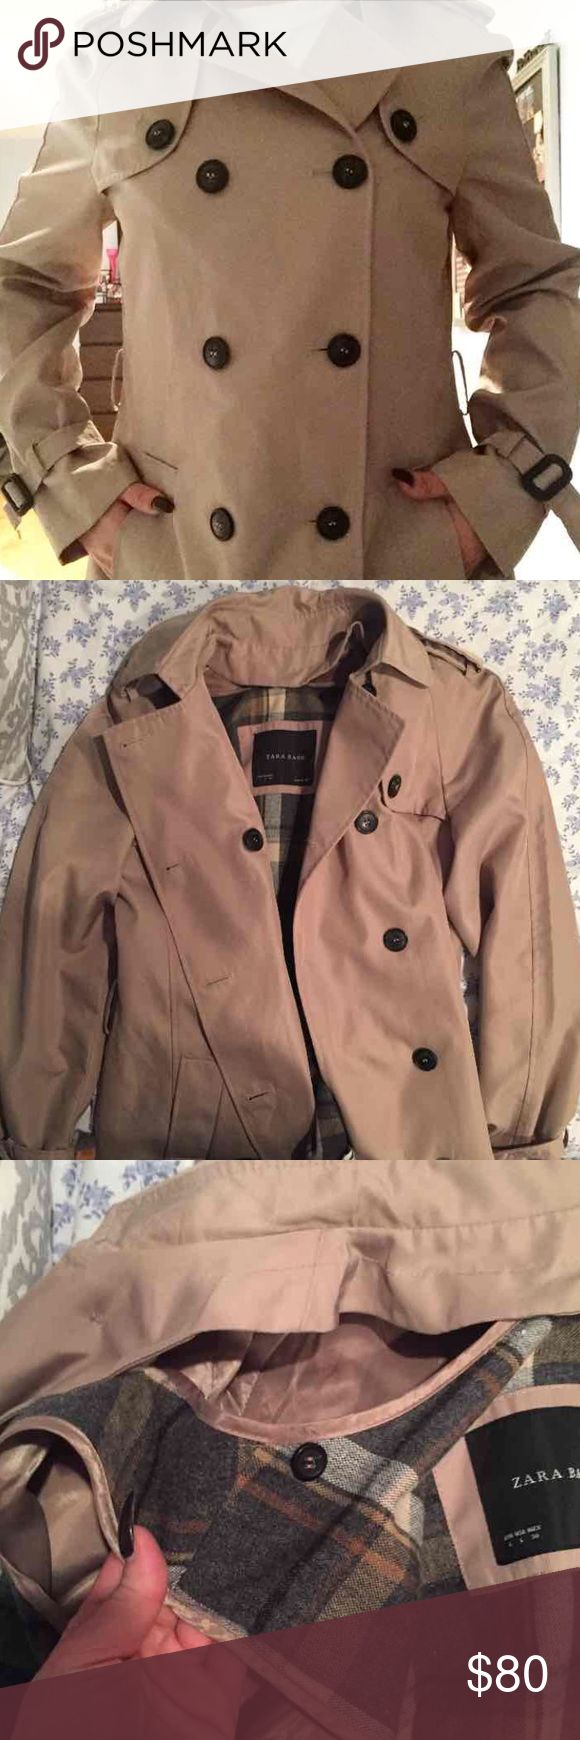 """Zara double breasted trench coat Never worn. Brand new. It's also a waterproof trench coat with detachable vest inside to make it a more heavier jacket. (I'm 5'2"""") Zara Jackets & Coats Trench Coats"""